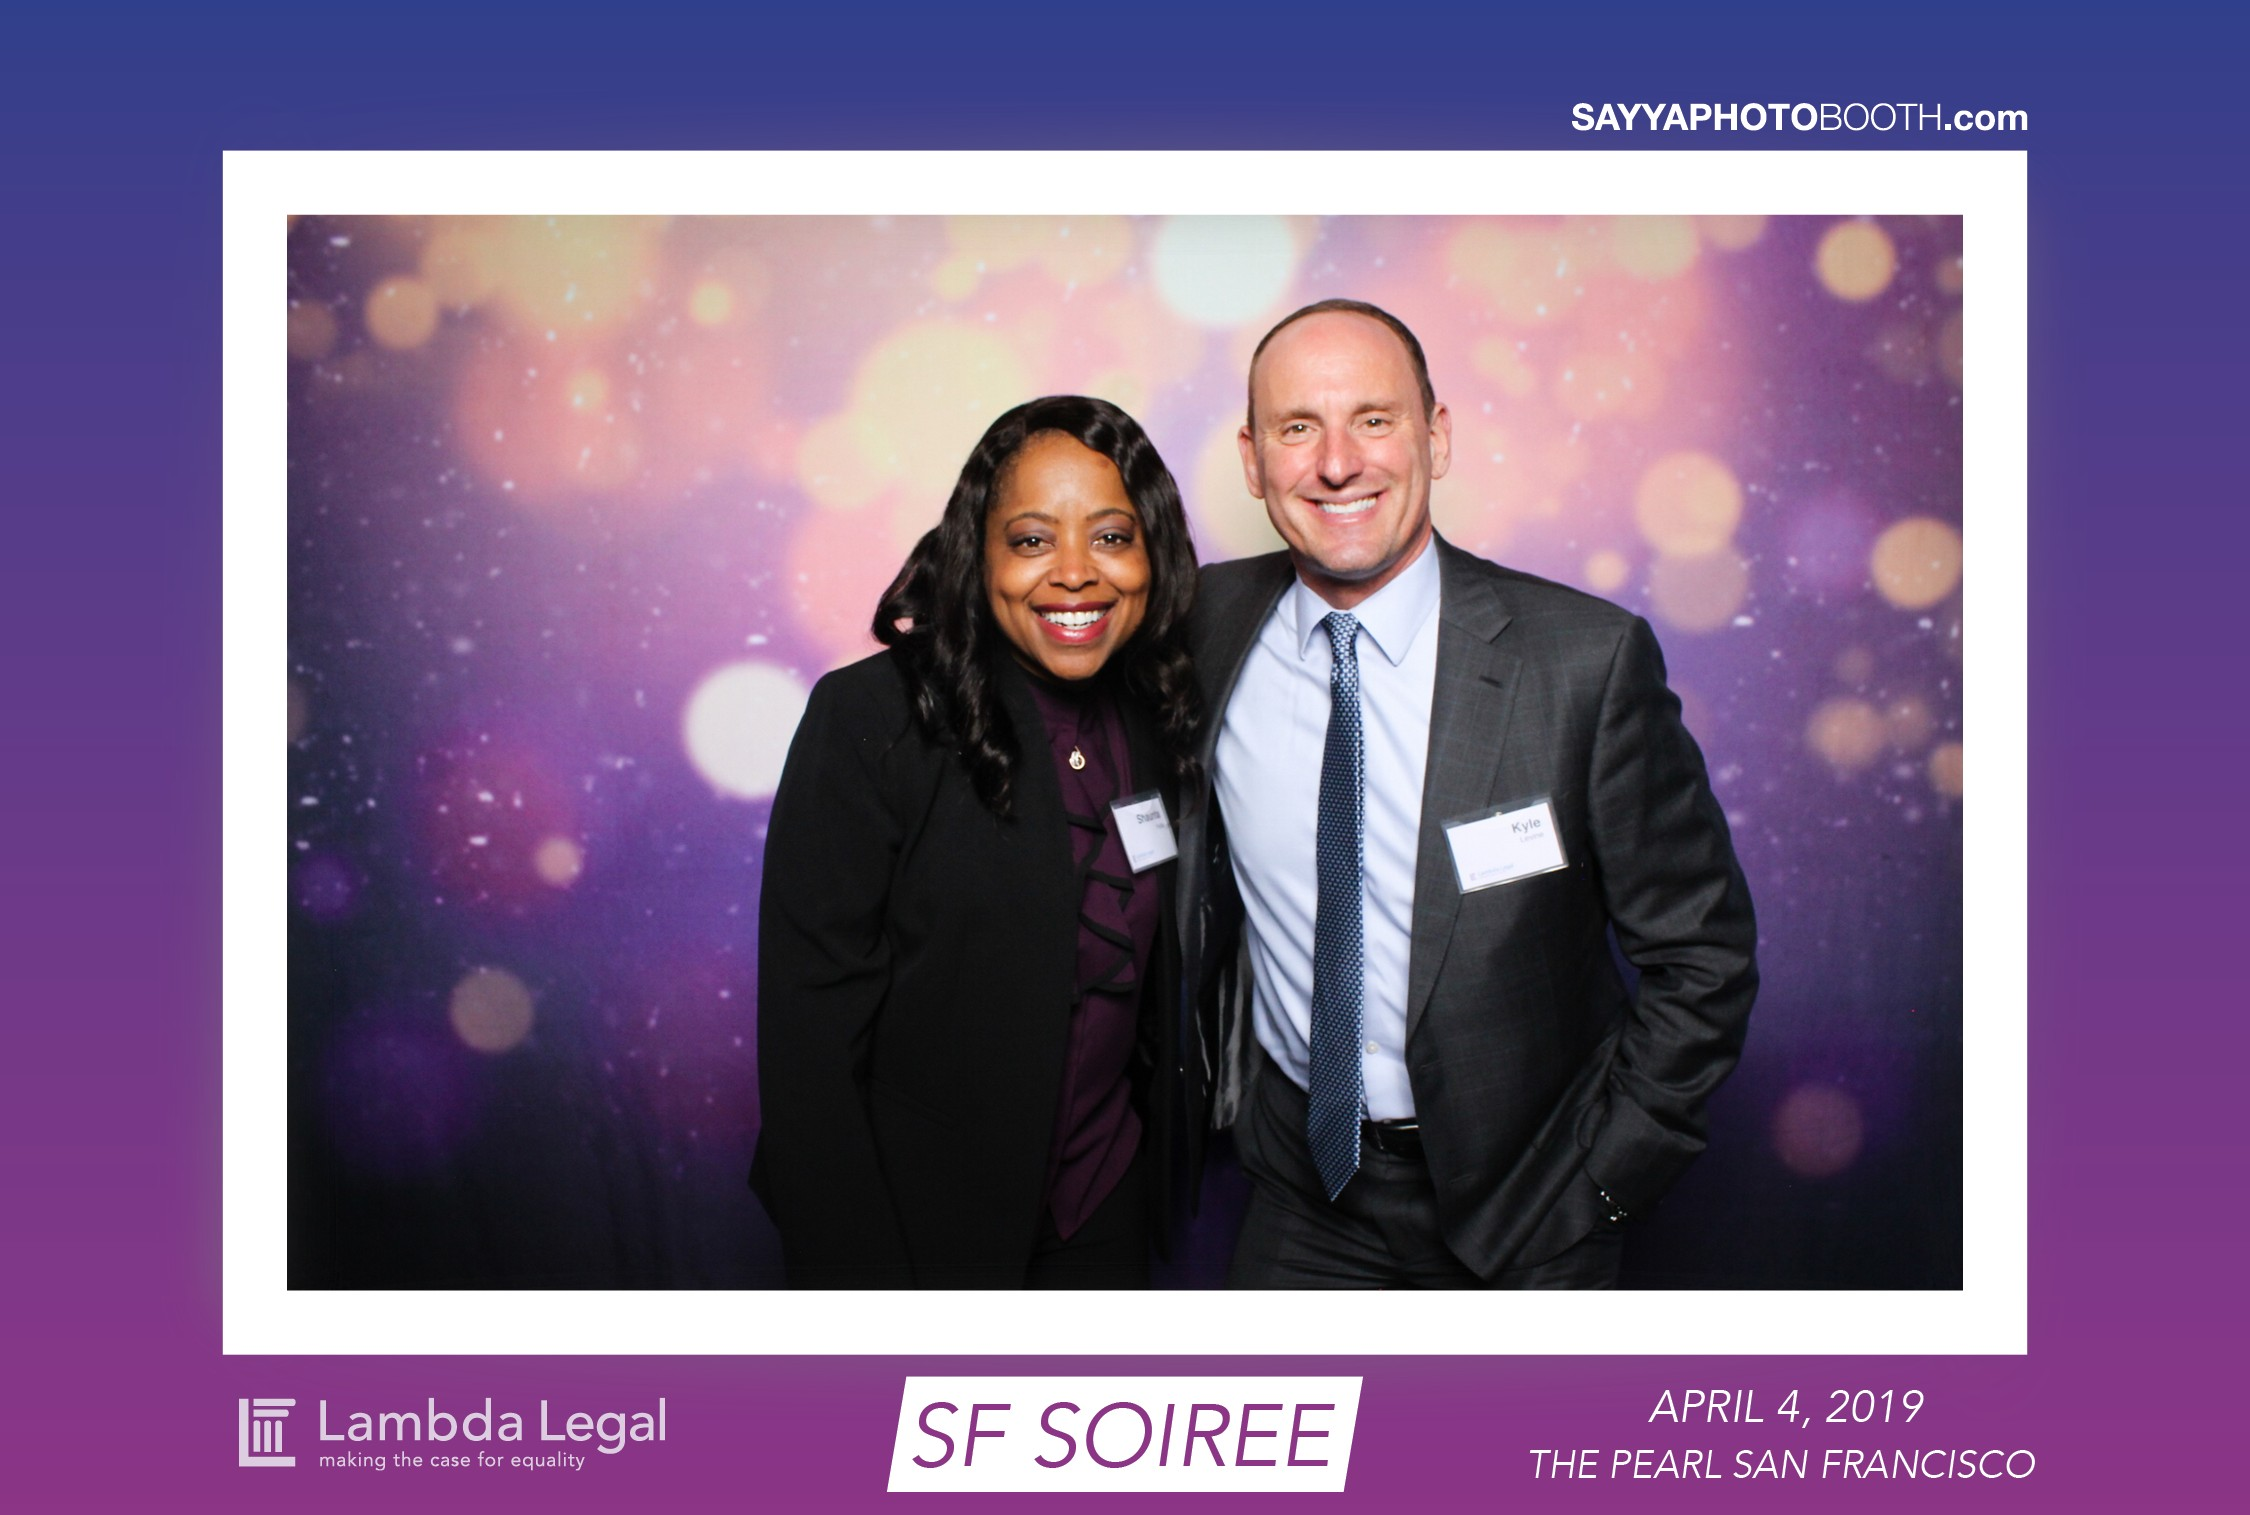 Lambda Legal's SF Soiree